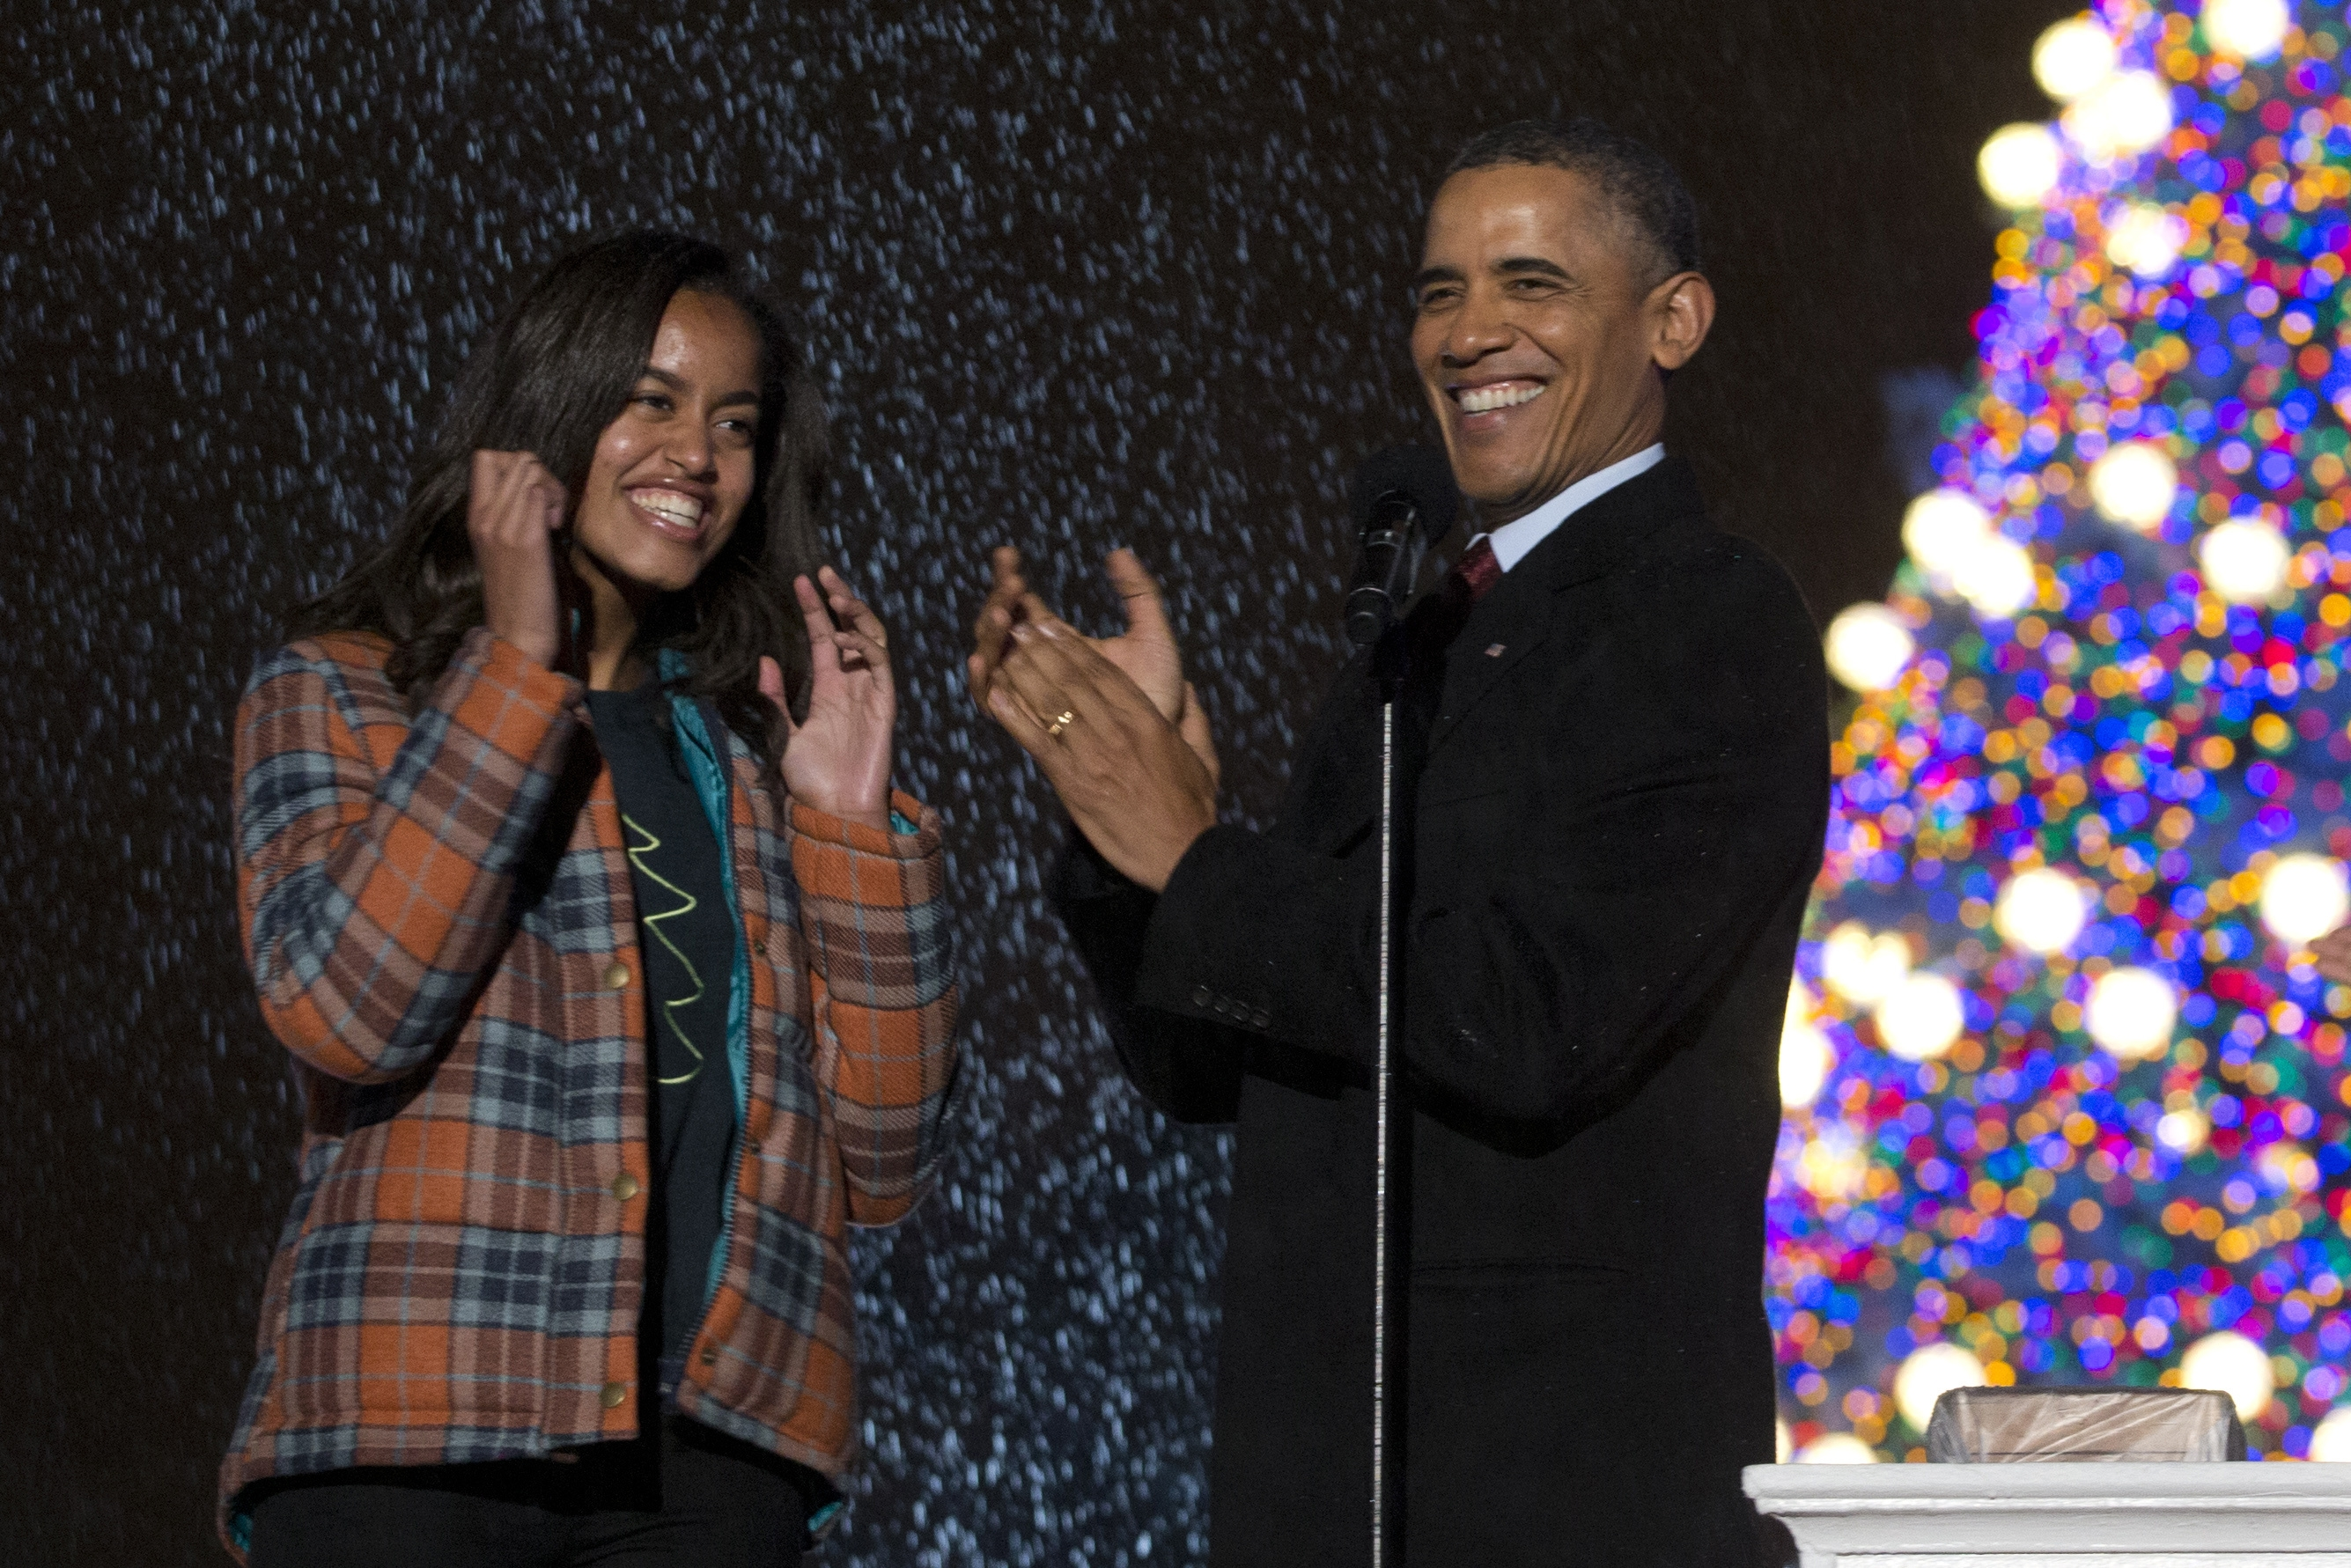 President Obama will soon be dealing with the reality that his daughter Malia will be going off to college.